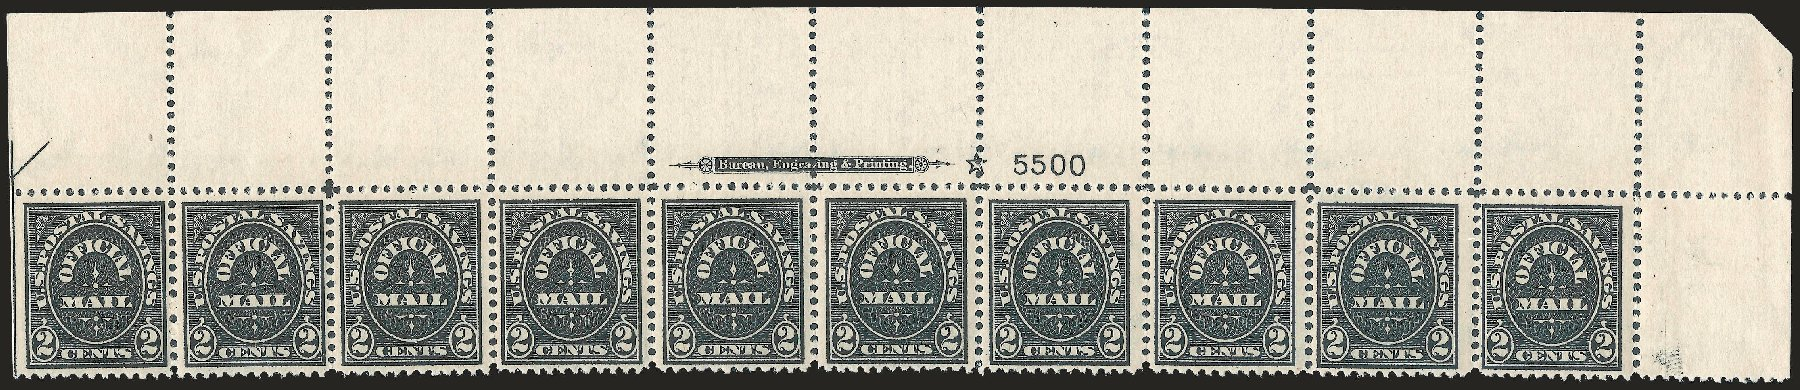 US Stamp Prices Scott # O121 - 1910 2c Postal Savings Official. Robert Siegel Auction Galleries, Jun 2010, Sale 991, Lot 1476